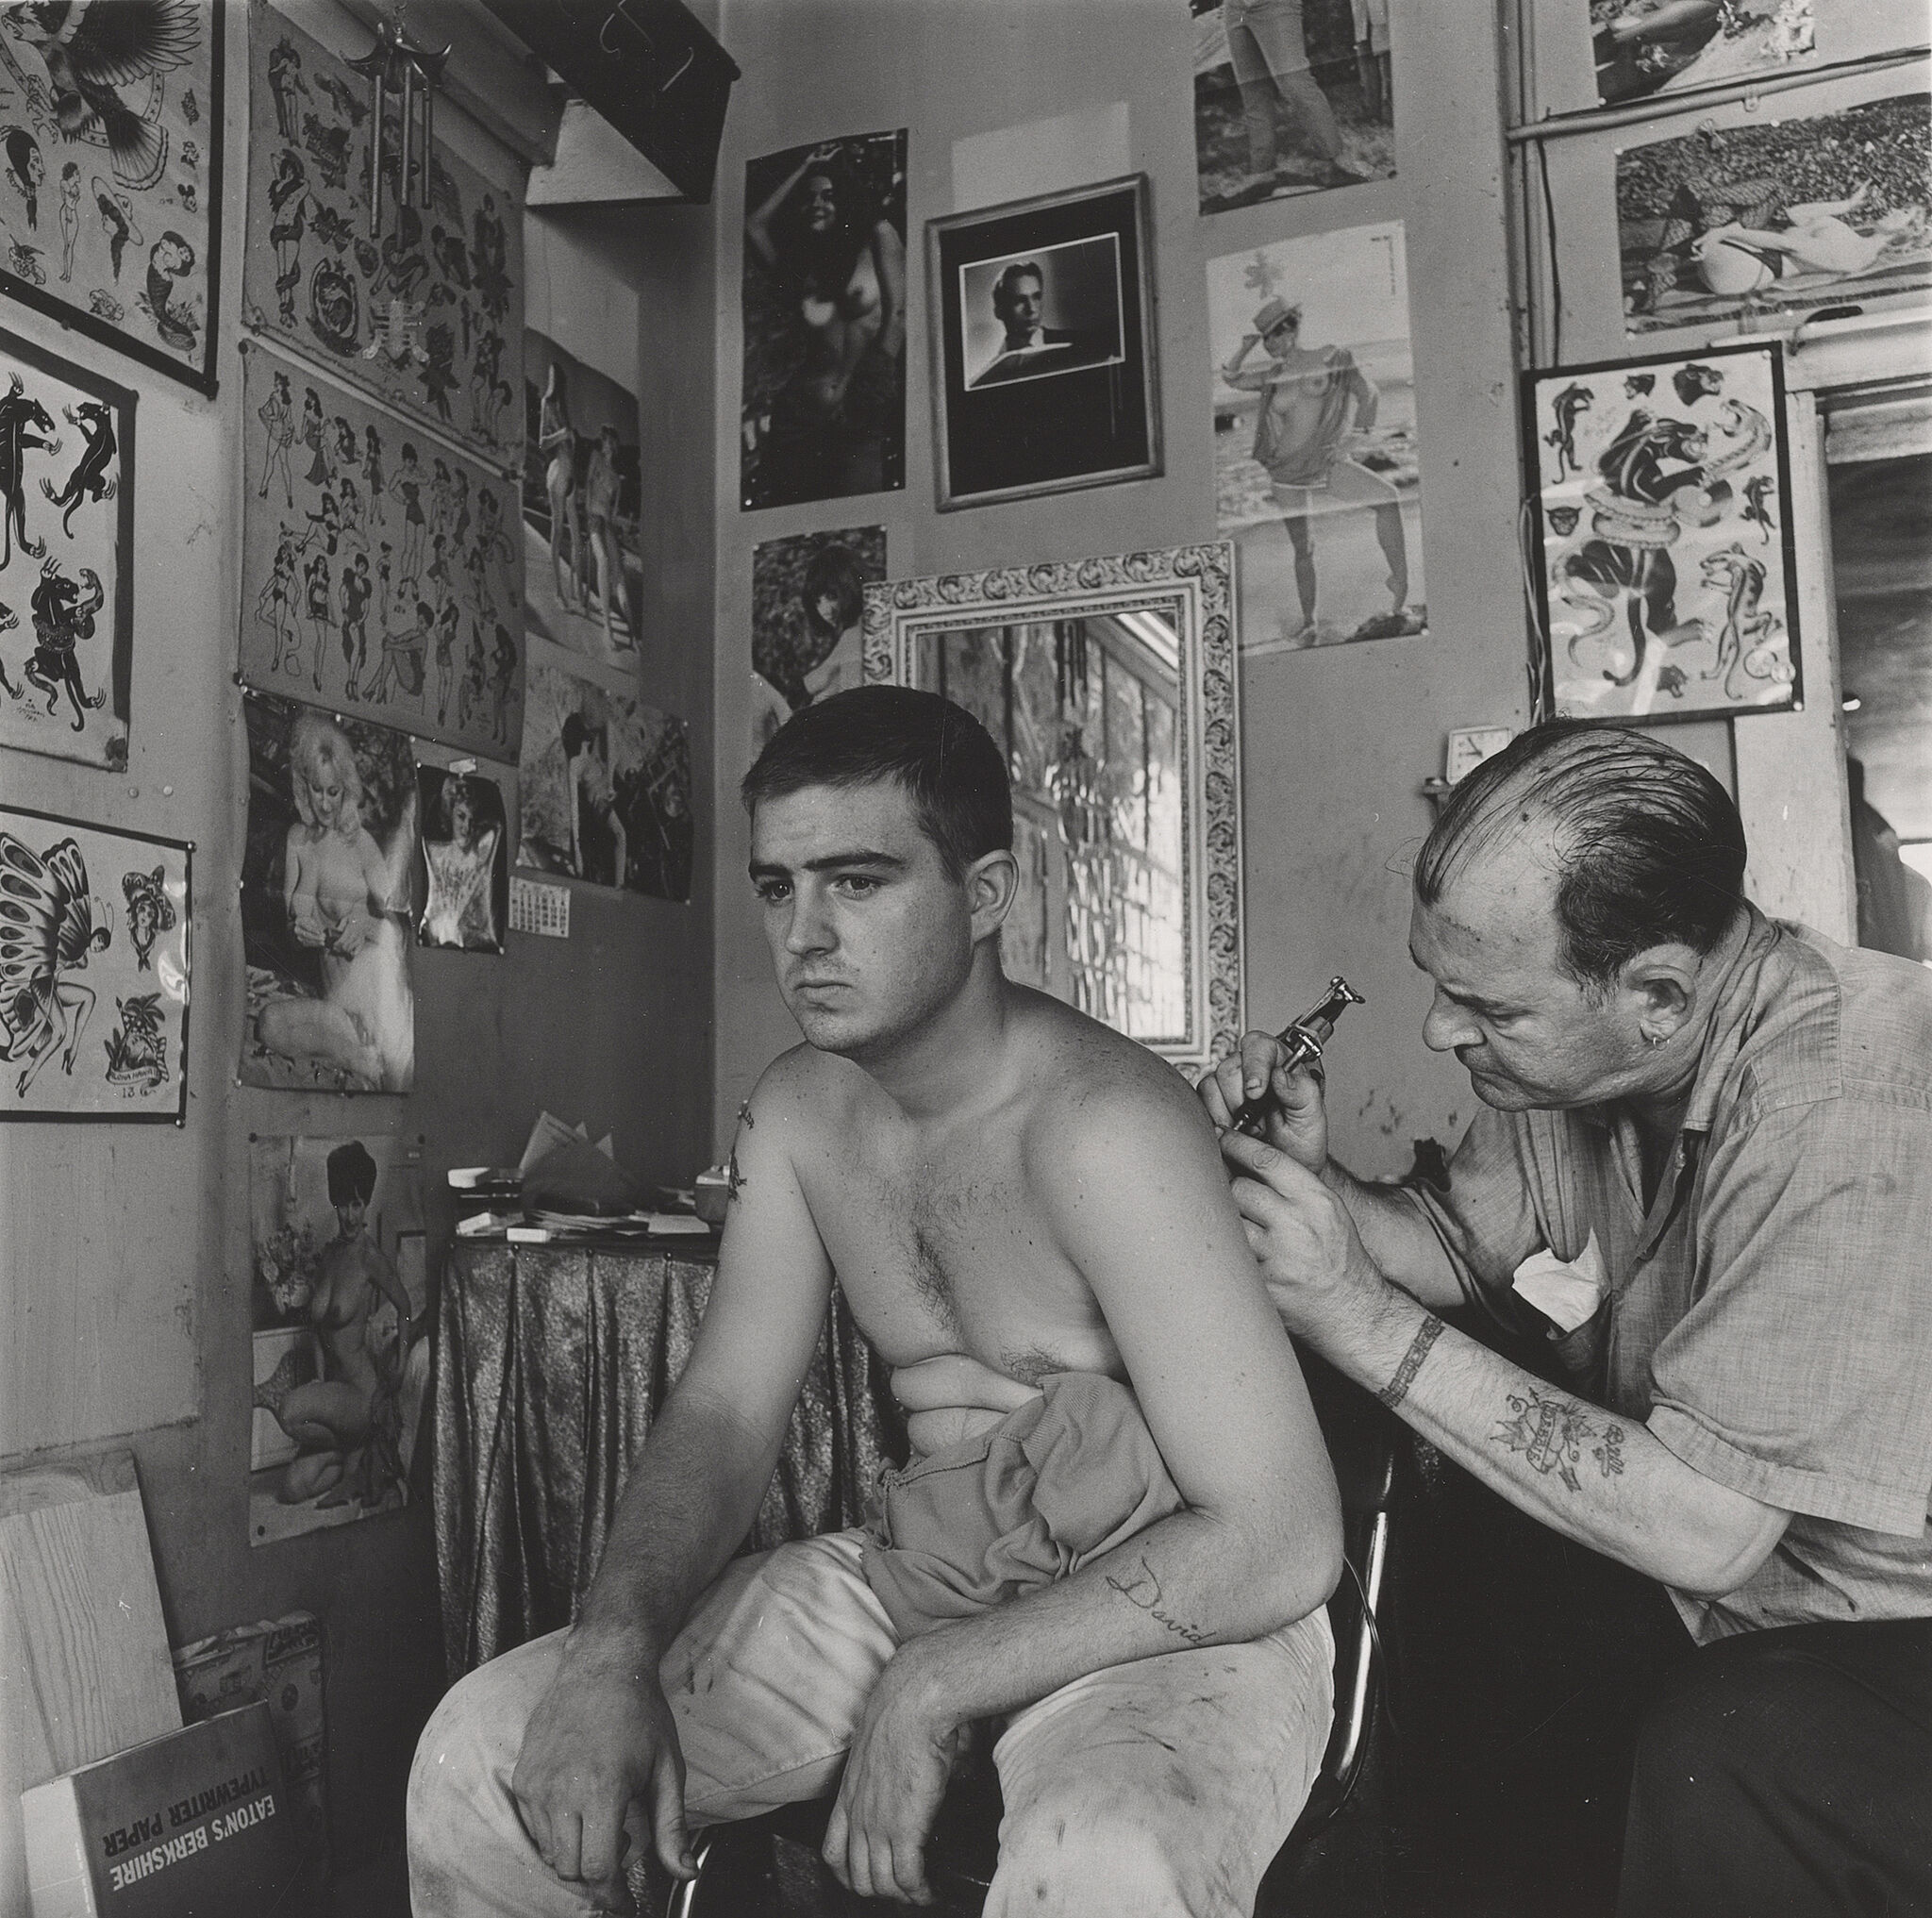 A man without a shirt gets a tattoo in a tattoo parlor.